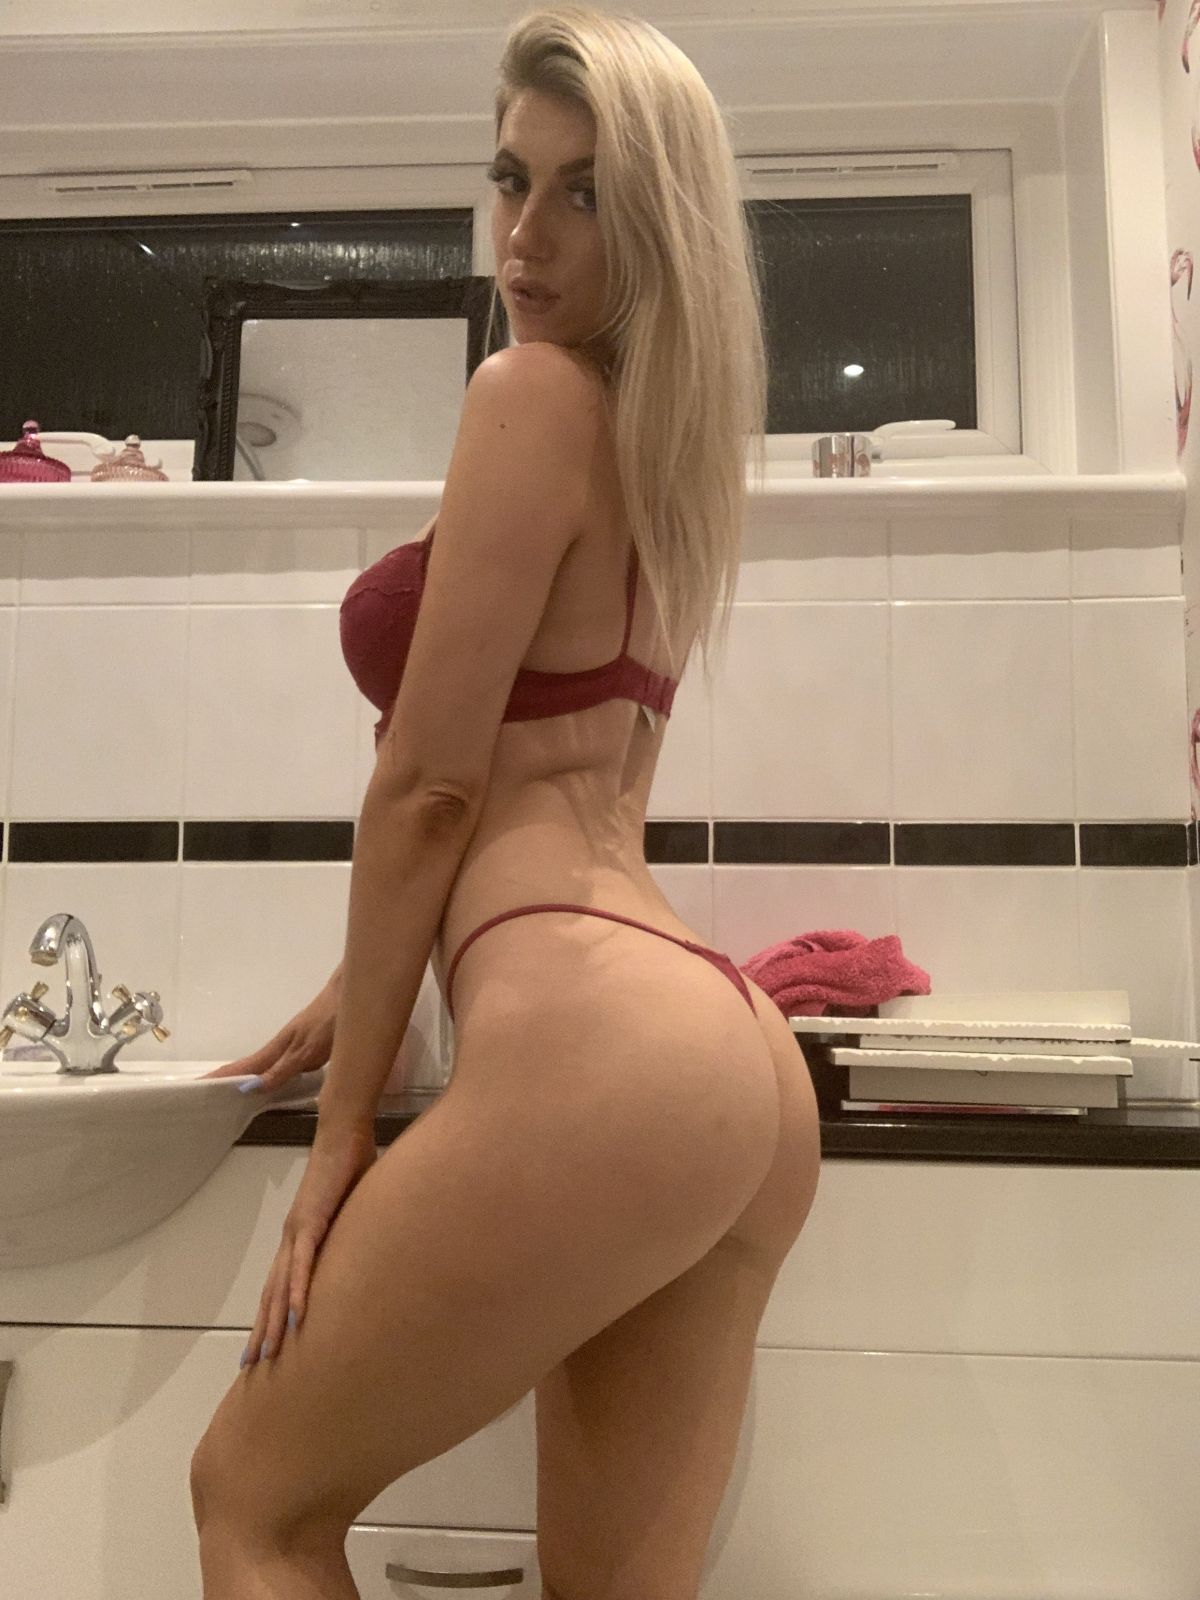 Holliehotlips92 nudes onlyfans onlyfans leaked